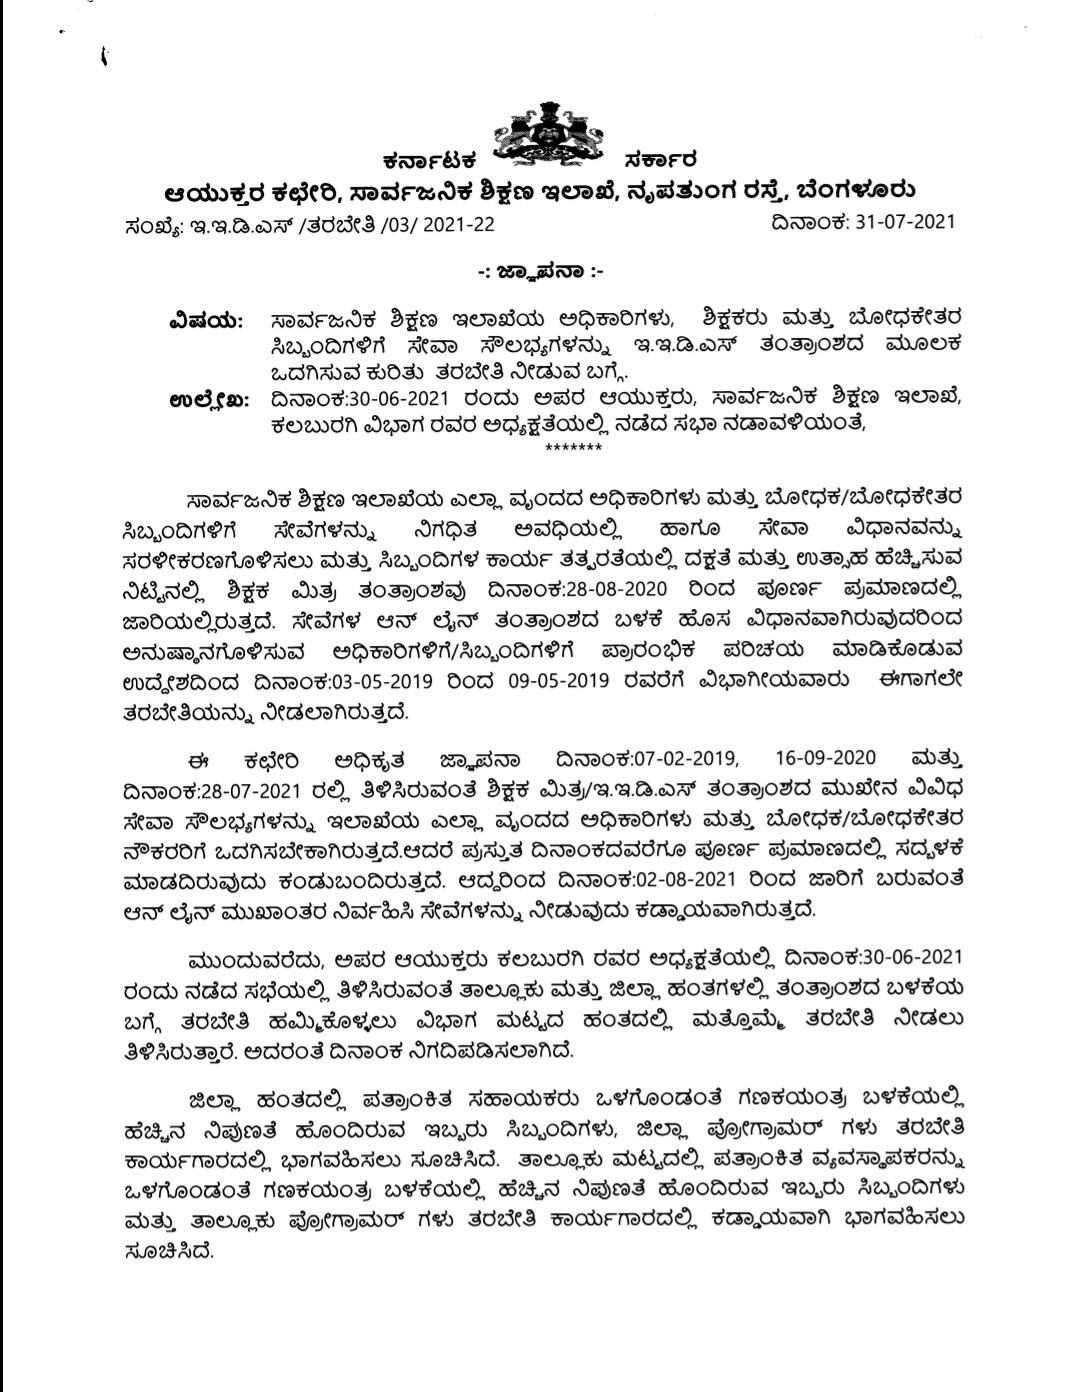 Training of Public Service Department Officers, Teachers & Non-teaching staff on providing service facilities through EEDS software. Date: 31-07-2021